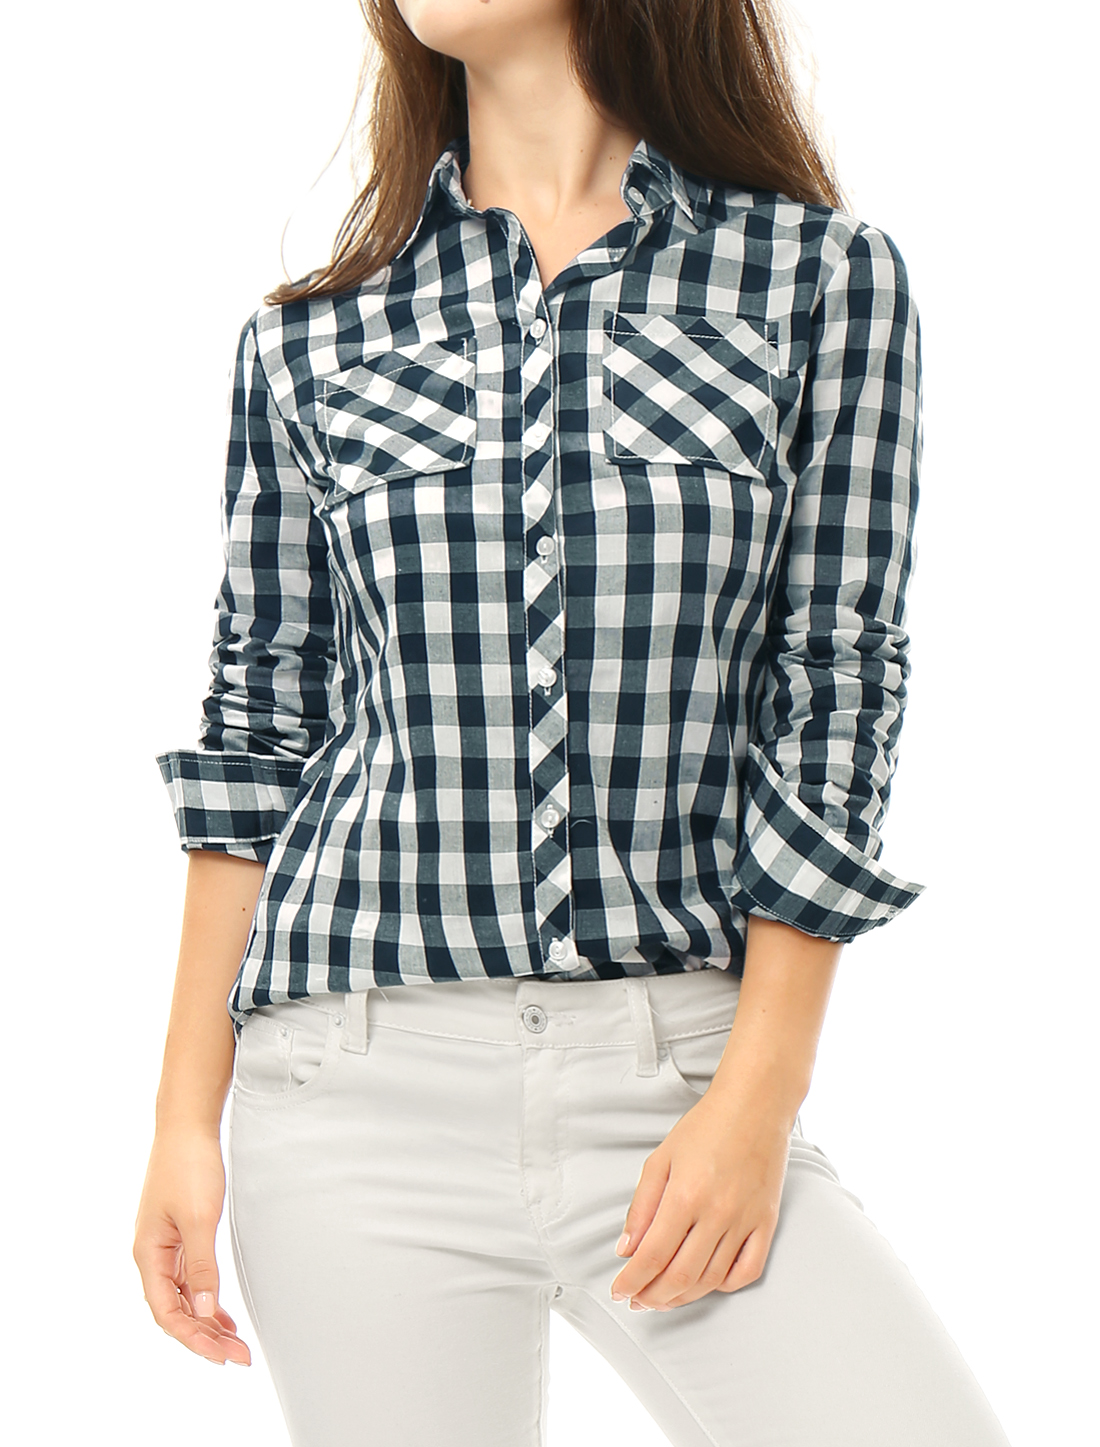 Women Bust Pockets Button Up Cotton Plaids Shirt Blue L